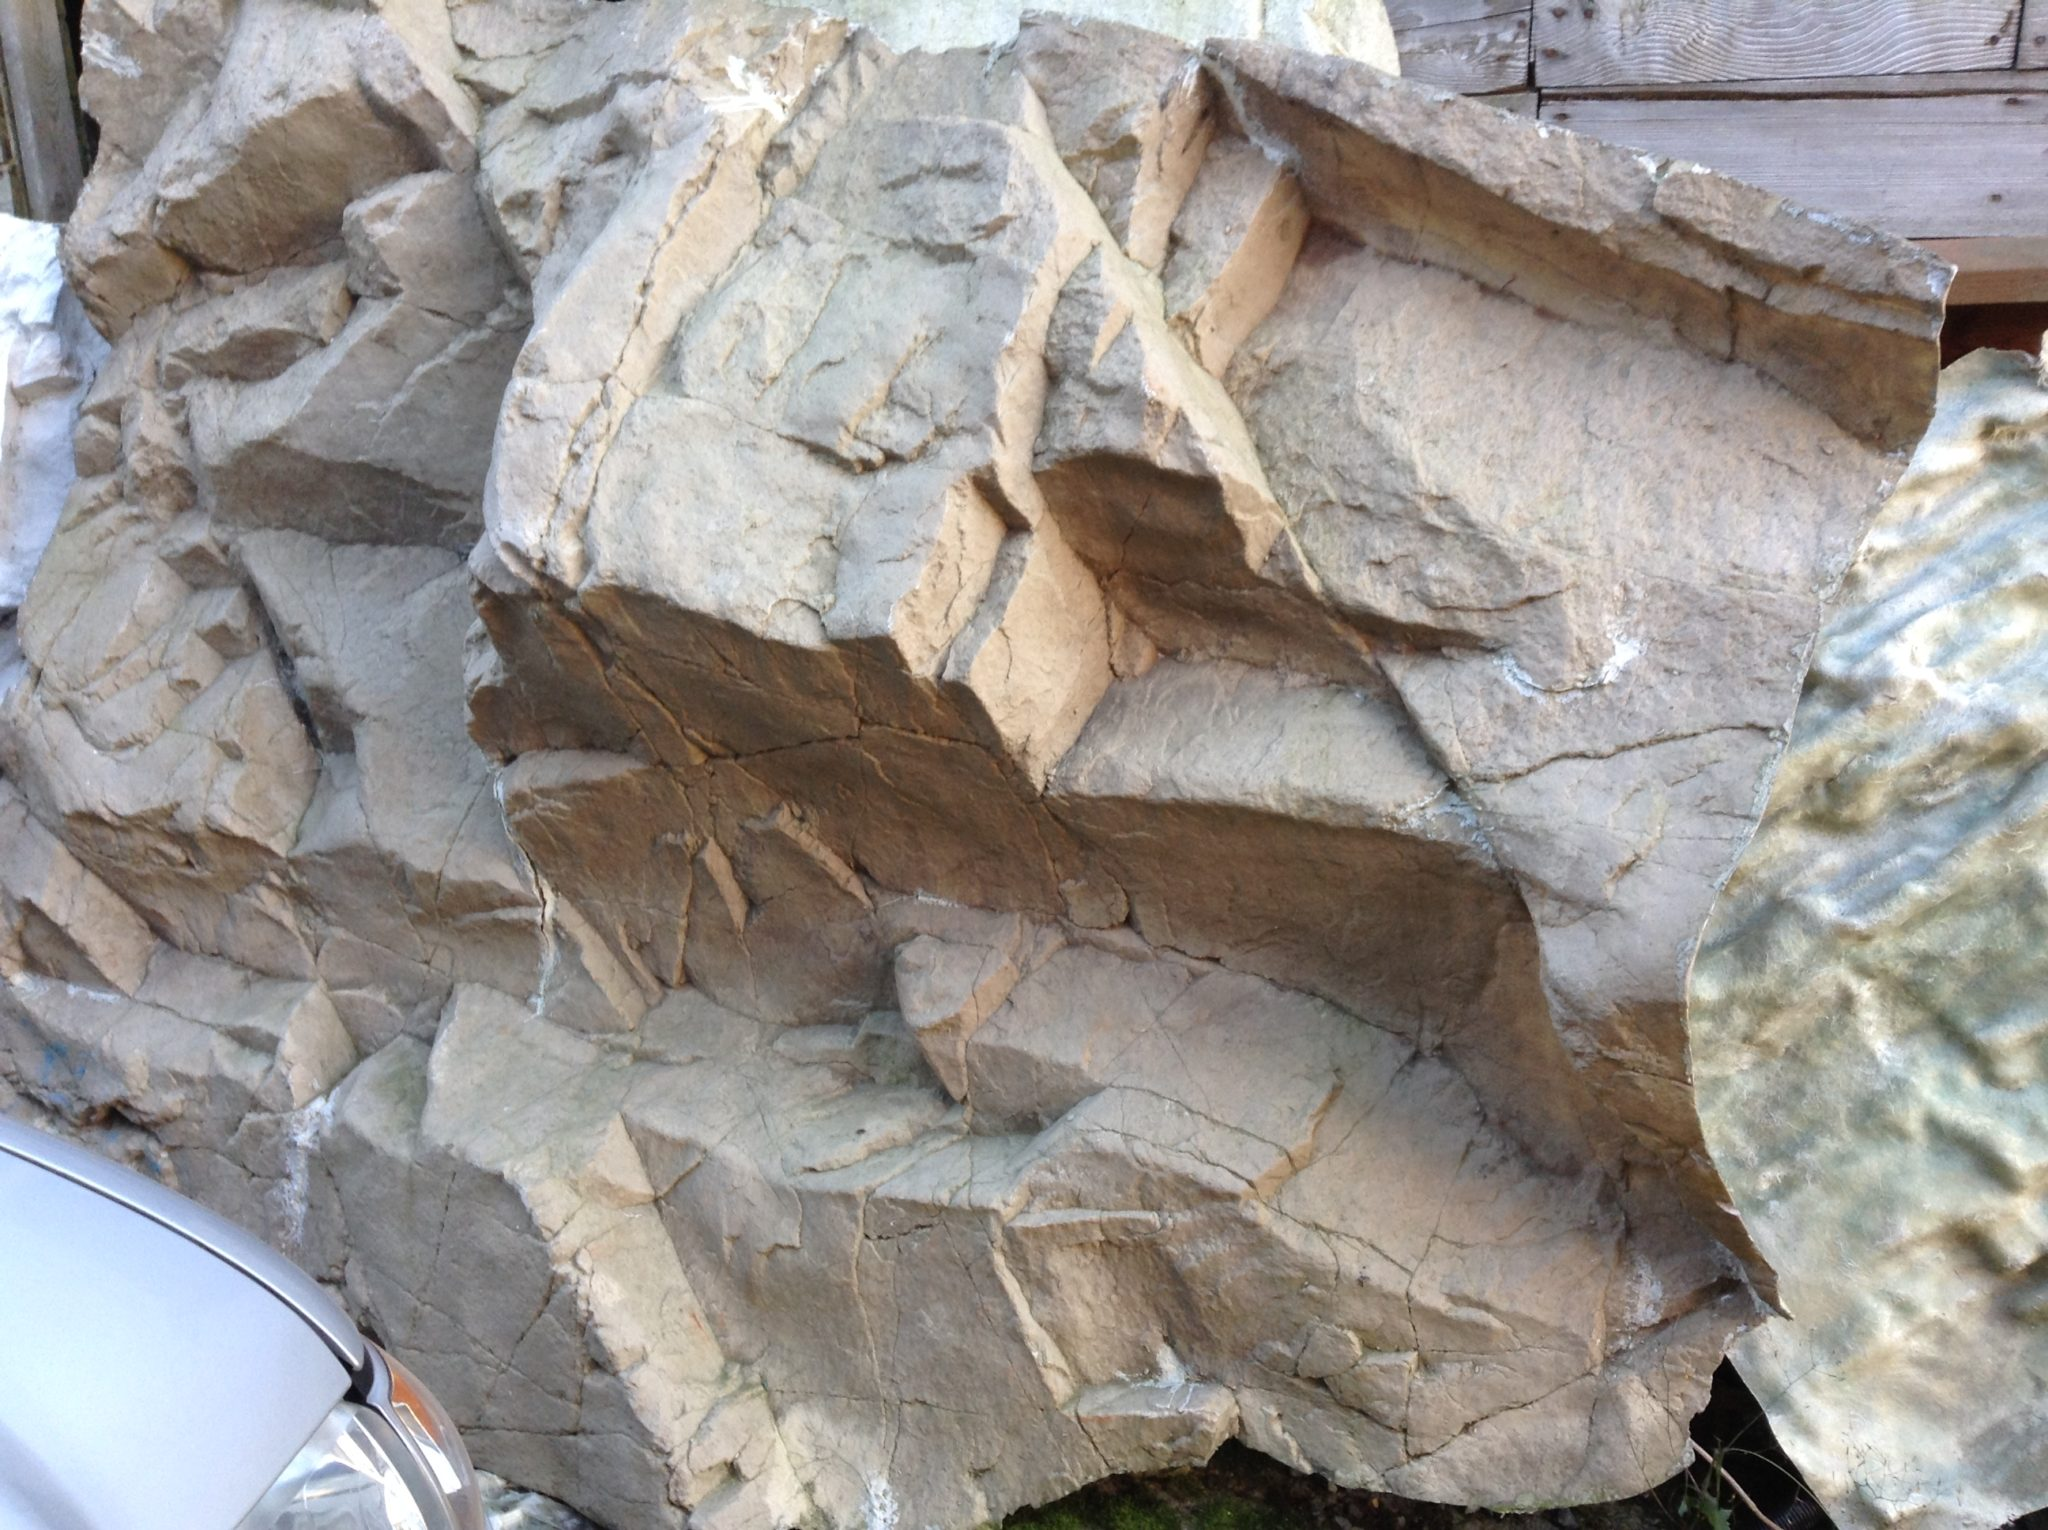 Waterfallnow Fiberglass Artificial Rock Panels